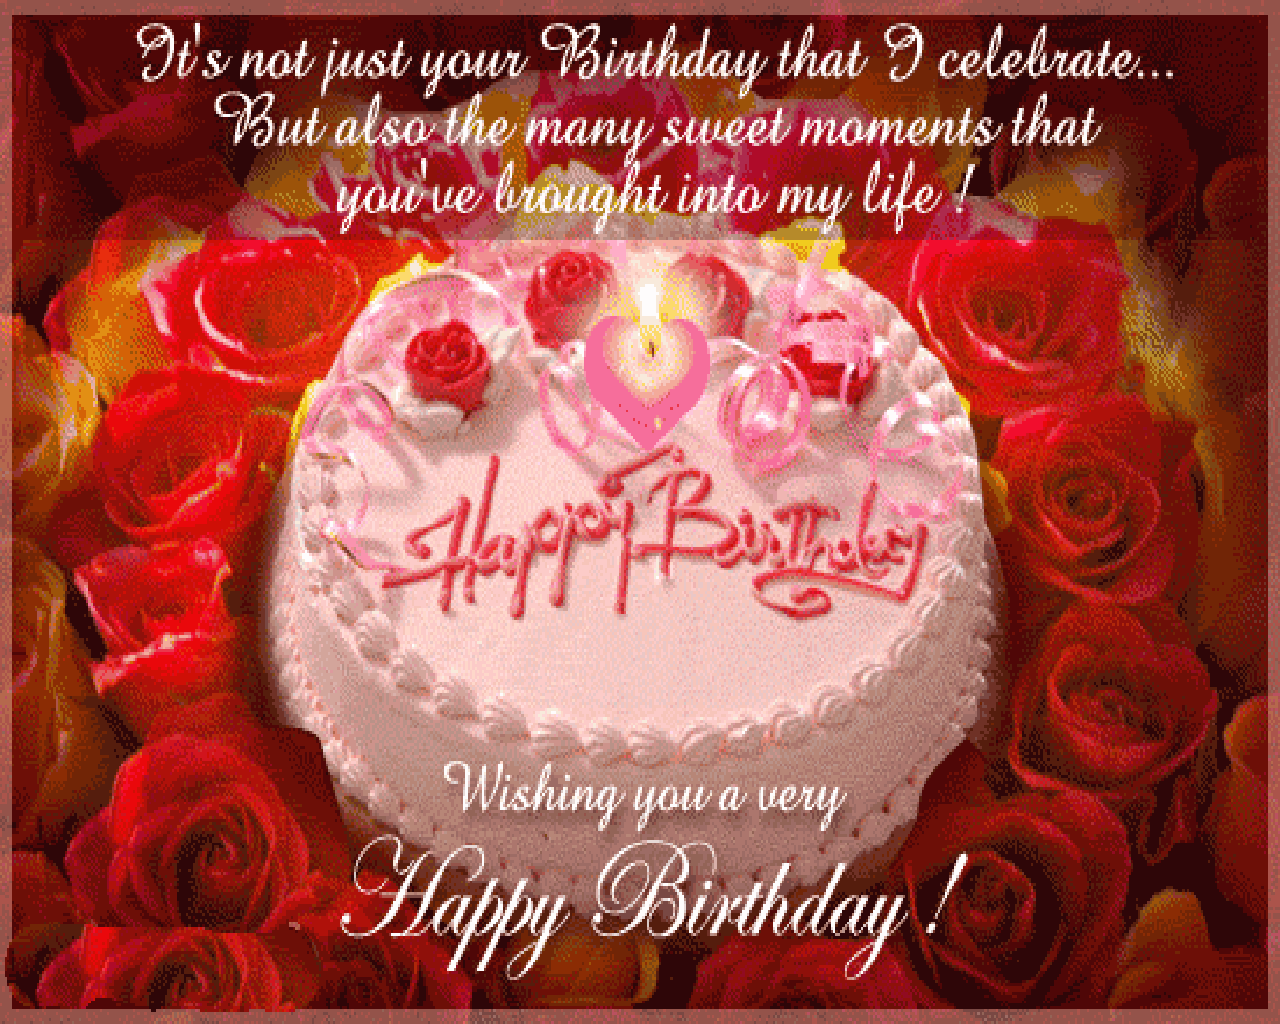 Happy Birthday Cards Messages HAPPY BIRTHDAY CARDS – Birthday Cards Greetings Friend